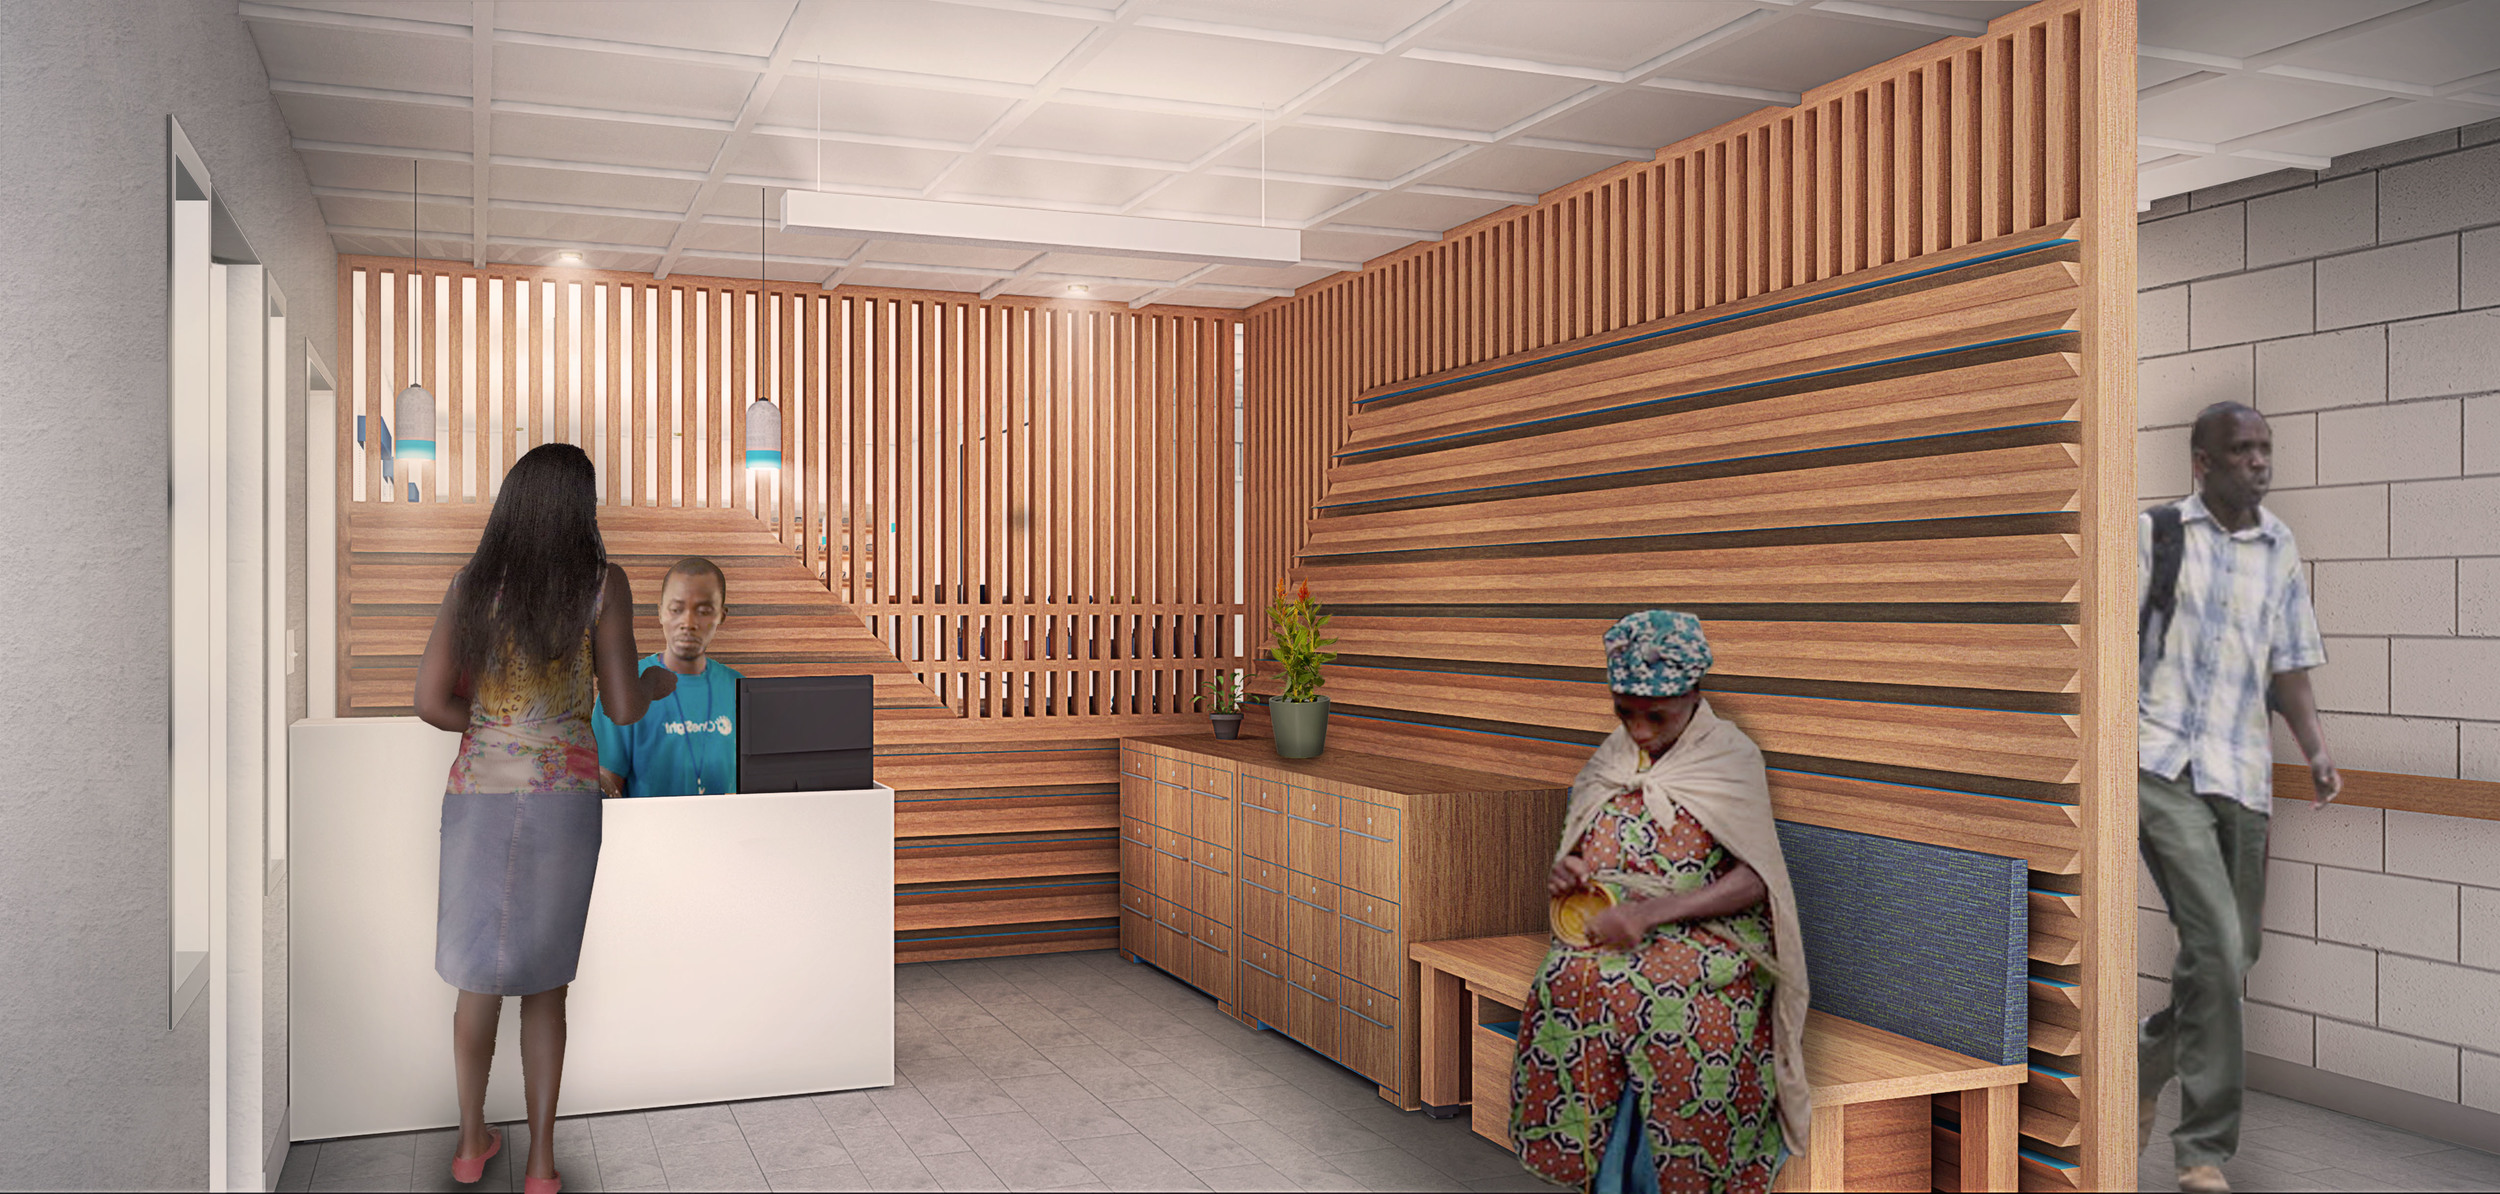 Reception Area featuring the Welcome Wall, seating and file storage.